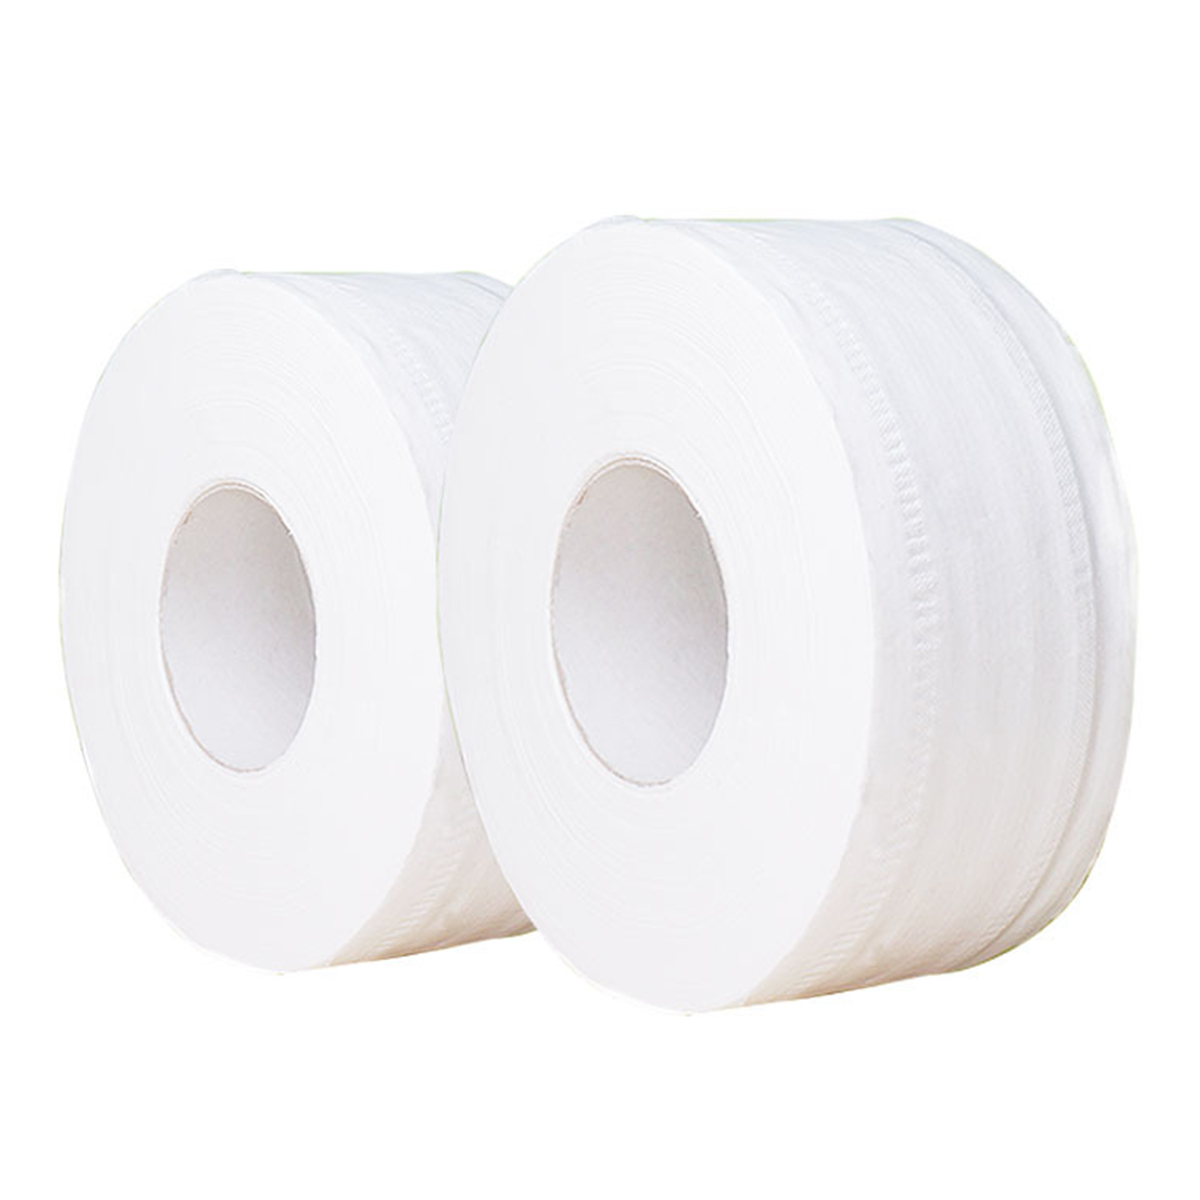 New 450g 1 Roll 4-Layer Roll Home Toilet Paper Native Wood Quality Soft Toilet Paper Pulp Rolling Paper Strong Water Absorption